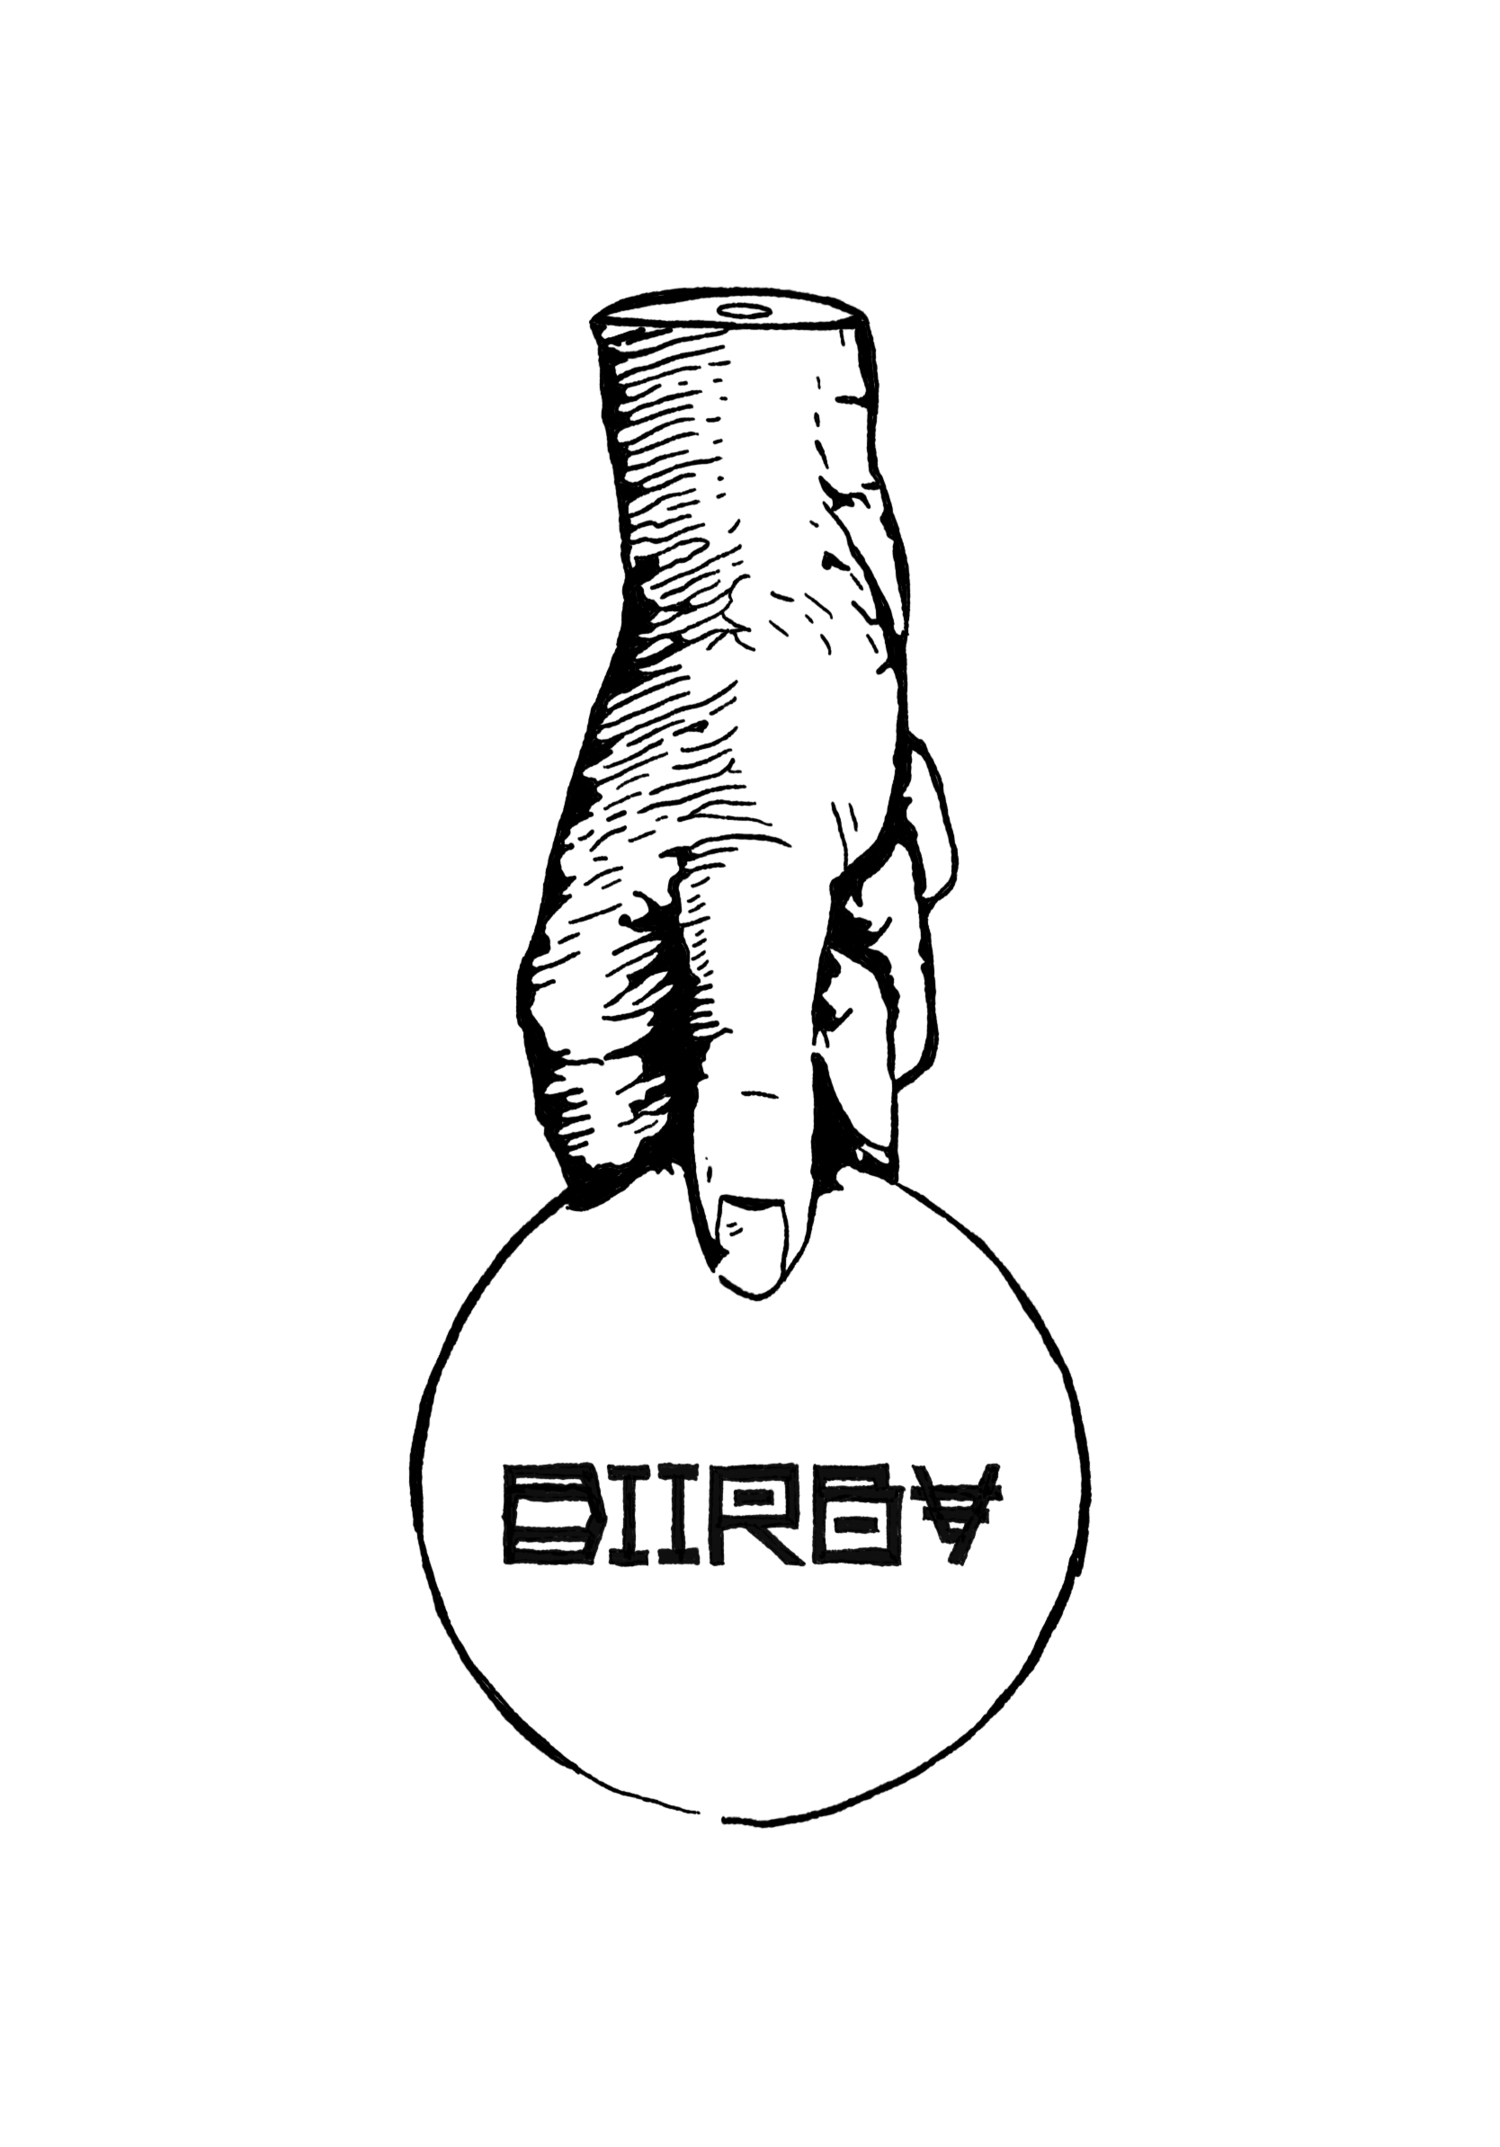 diirby